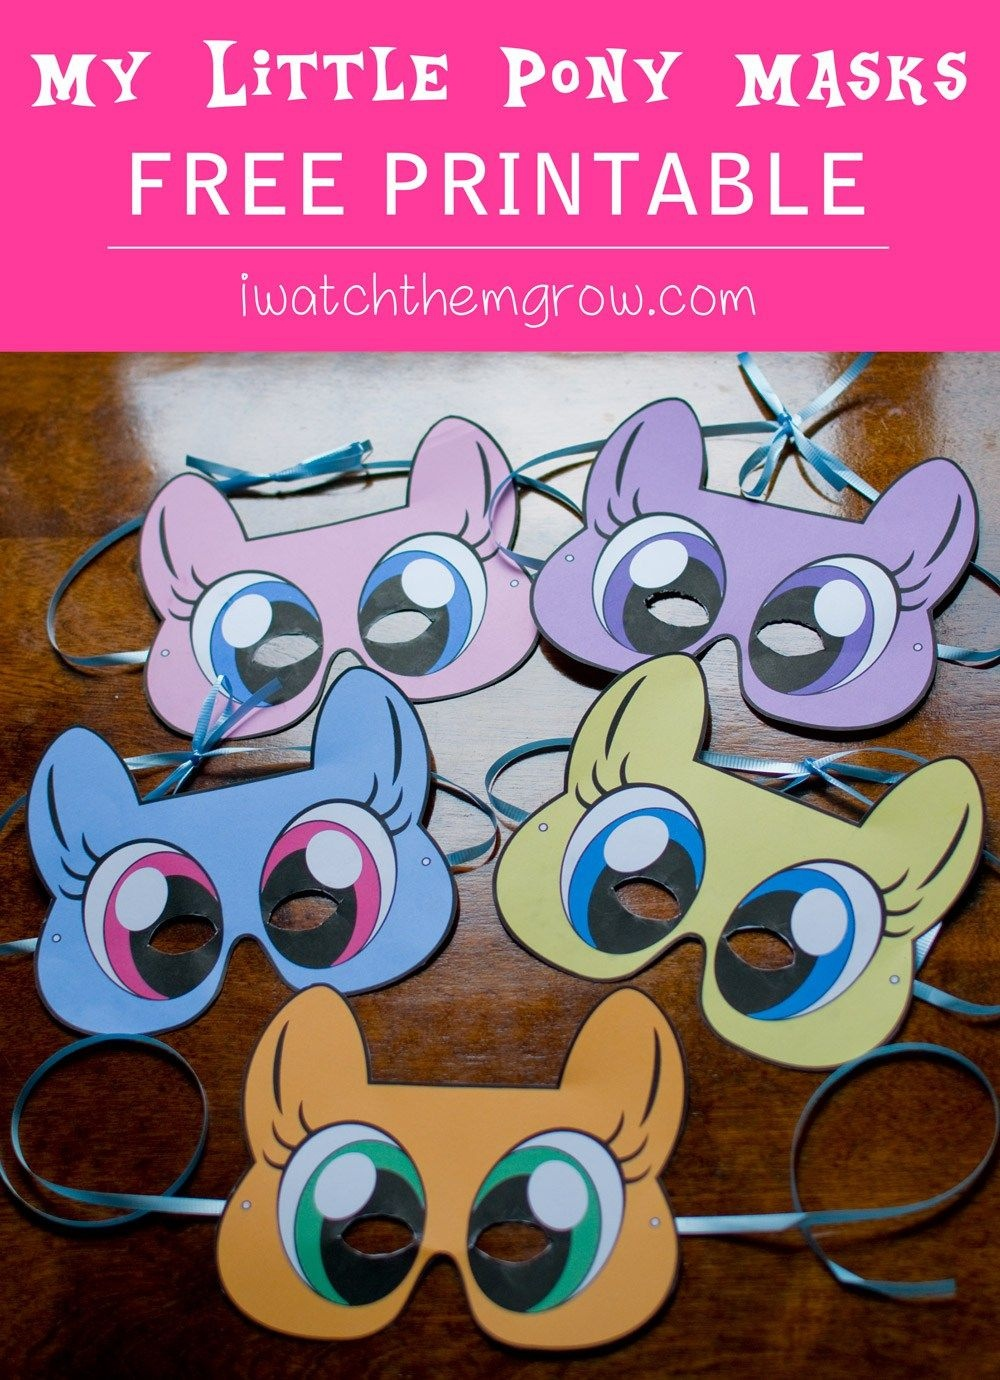 Free Printable My Little Pony Masks | Cartoon - My Little Pony | My - Free My Little Pony Printable Masks